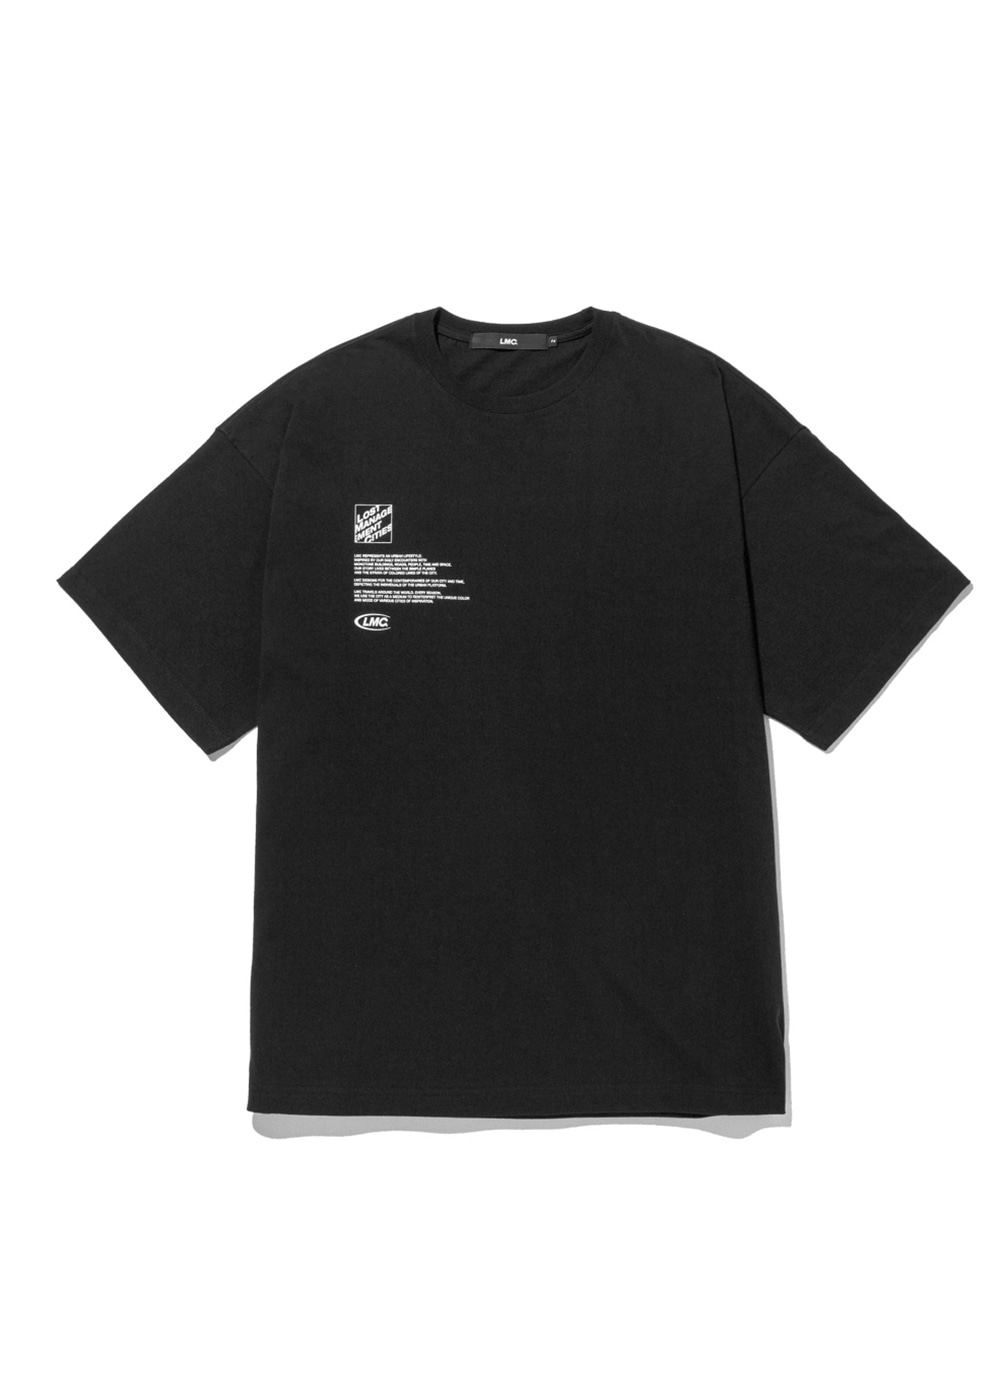 LMC SQUARE FN OVERSIZED TEE black